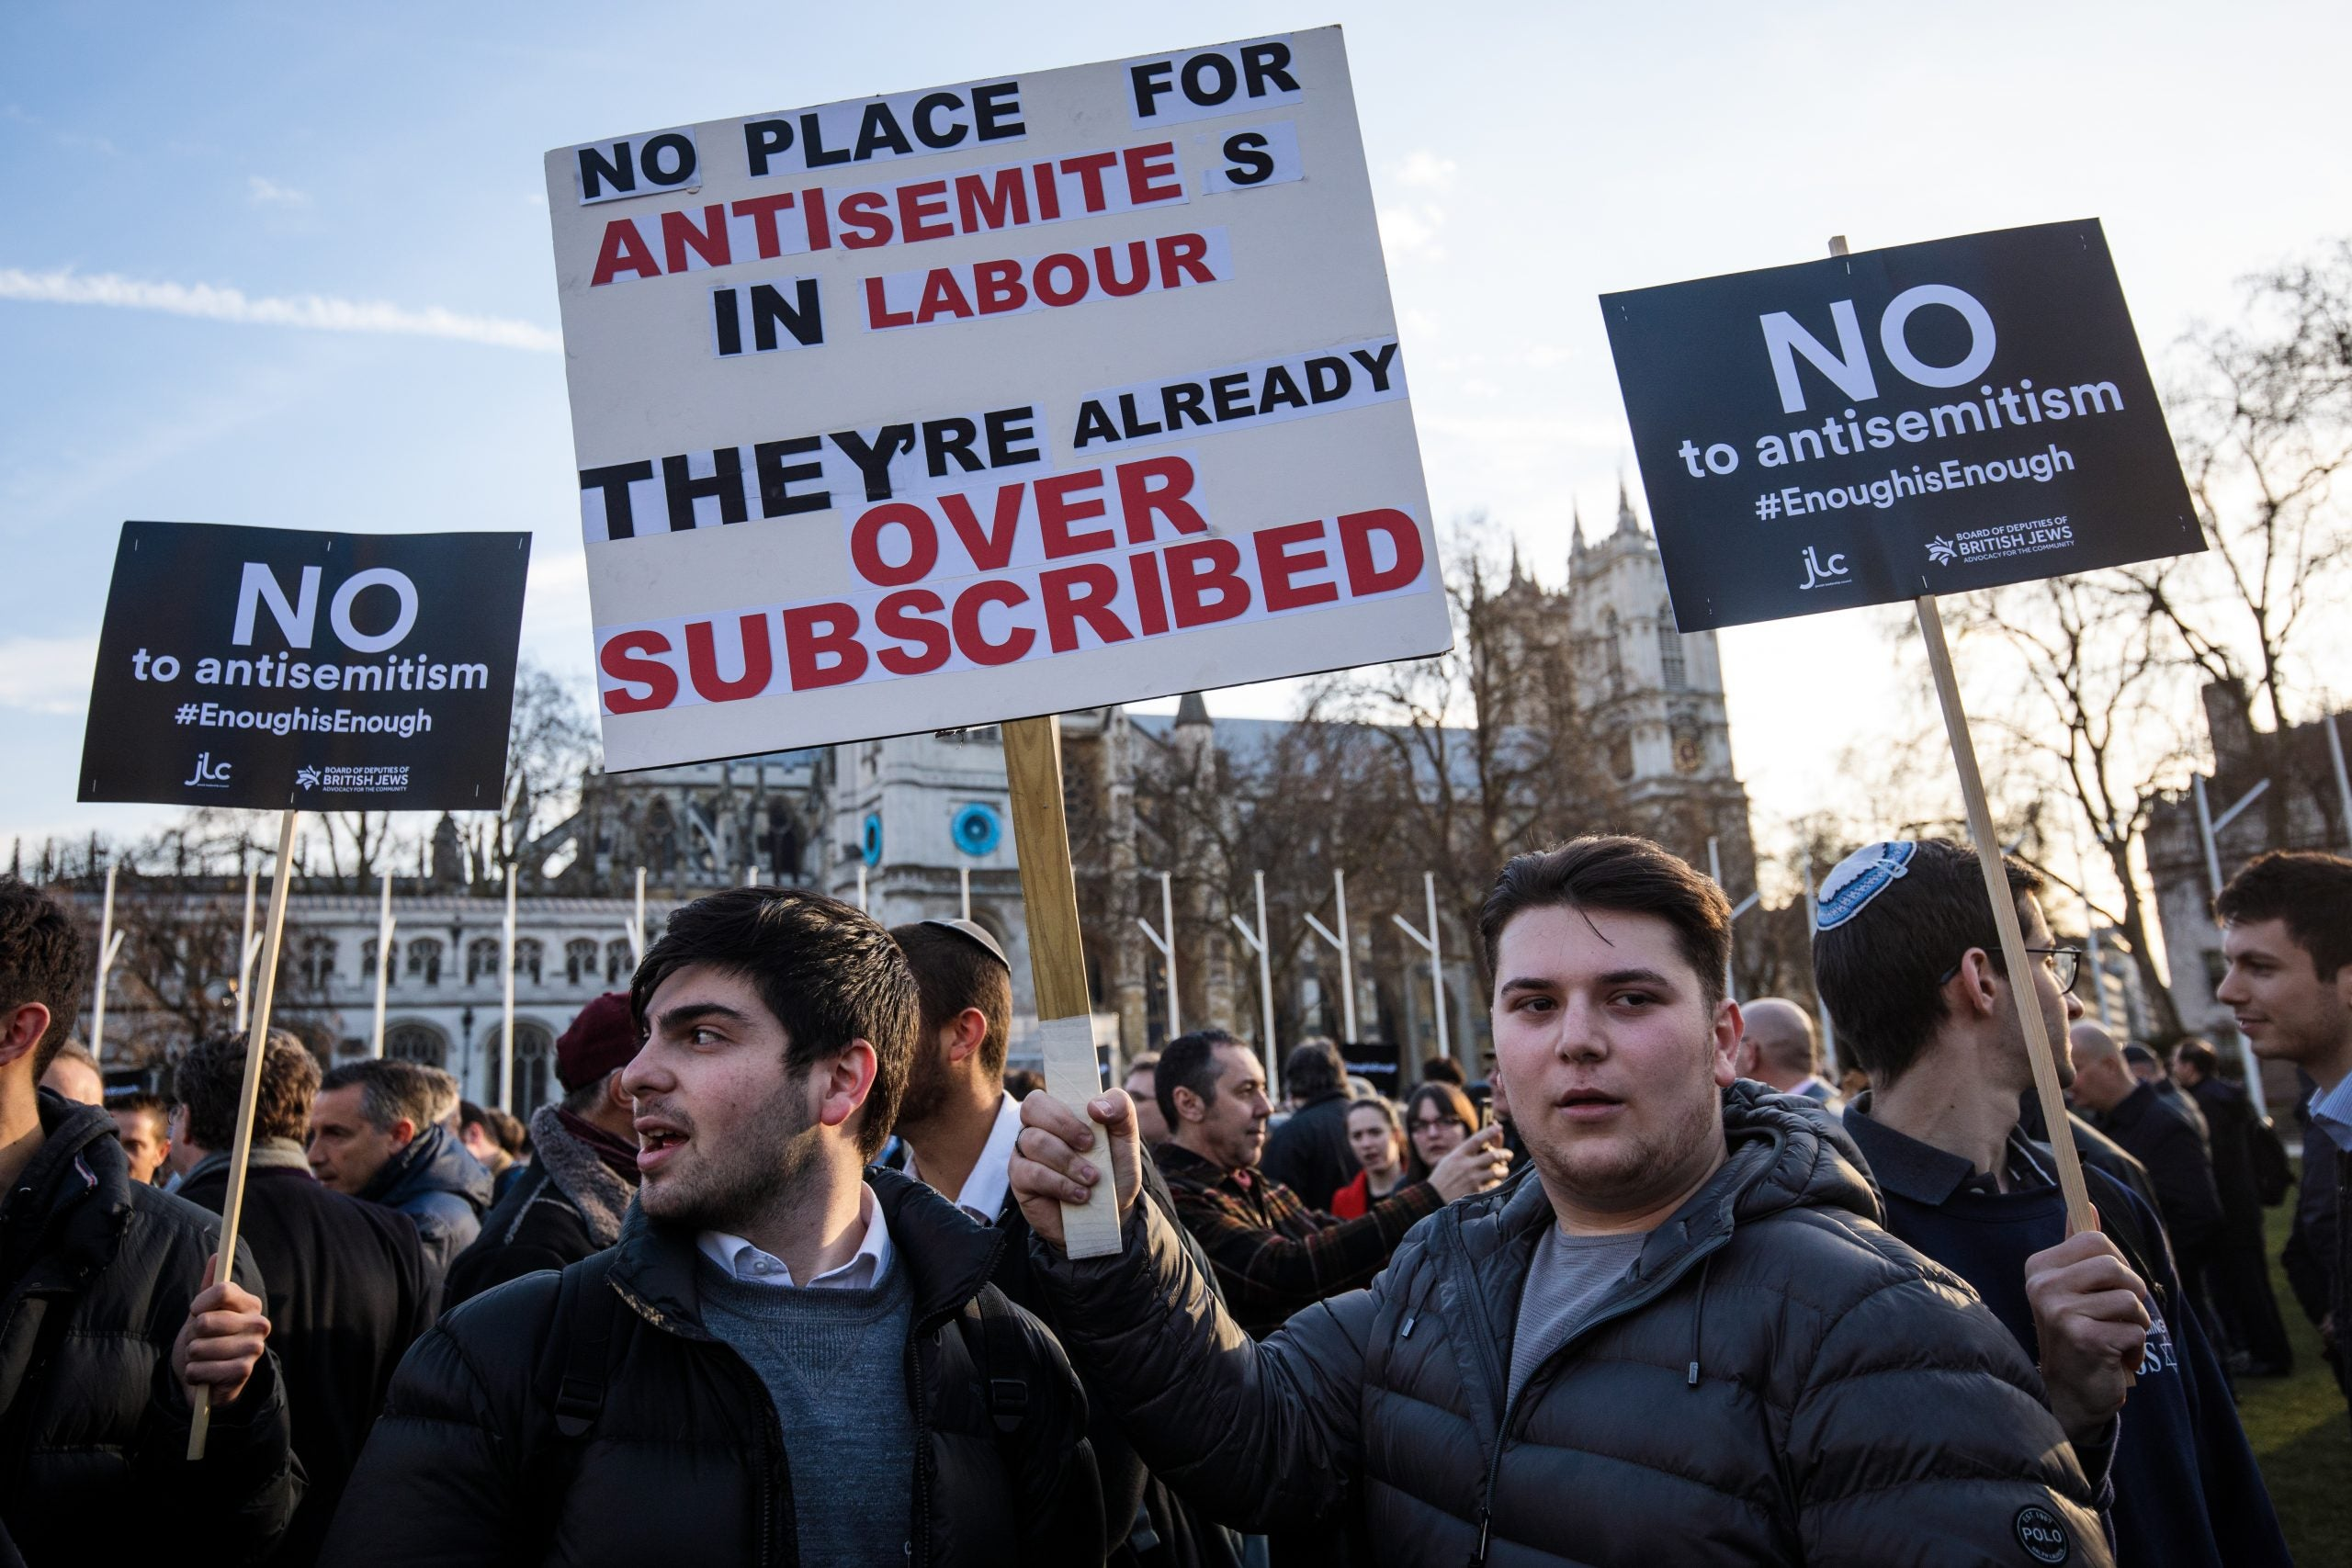 On anti-Semitism, new and old Labour members are moving in the same direction